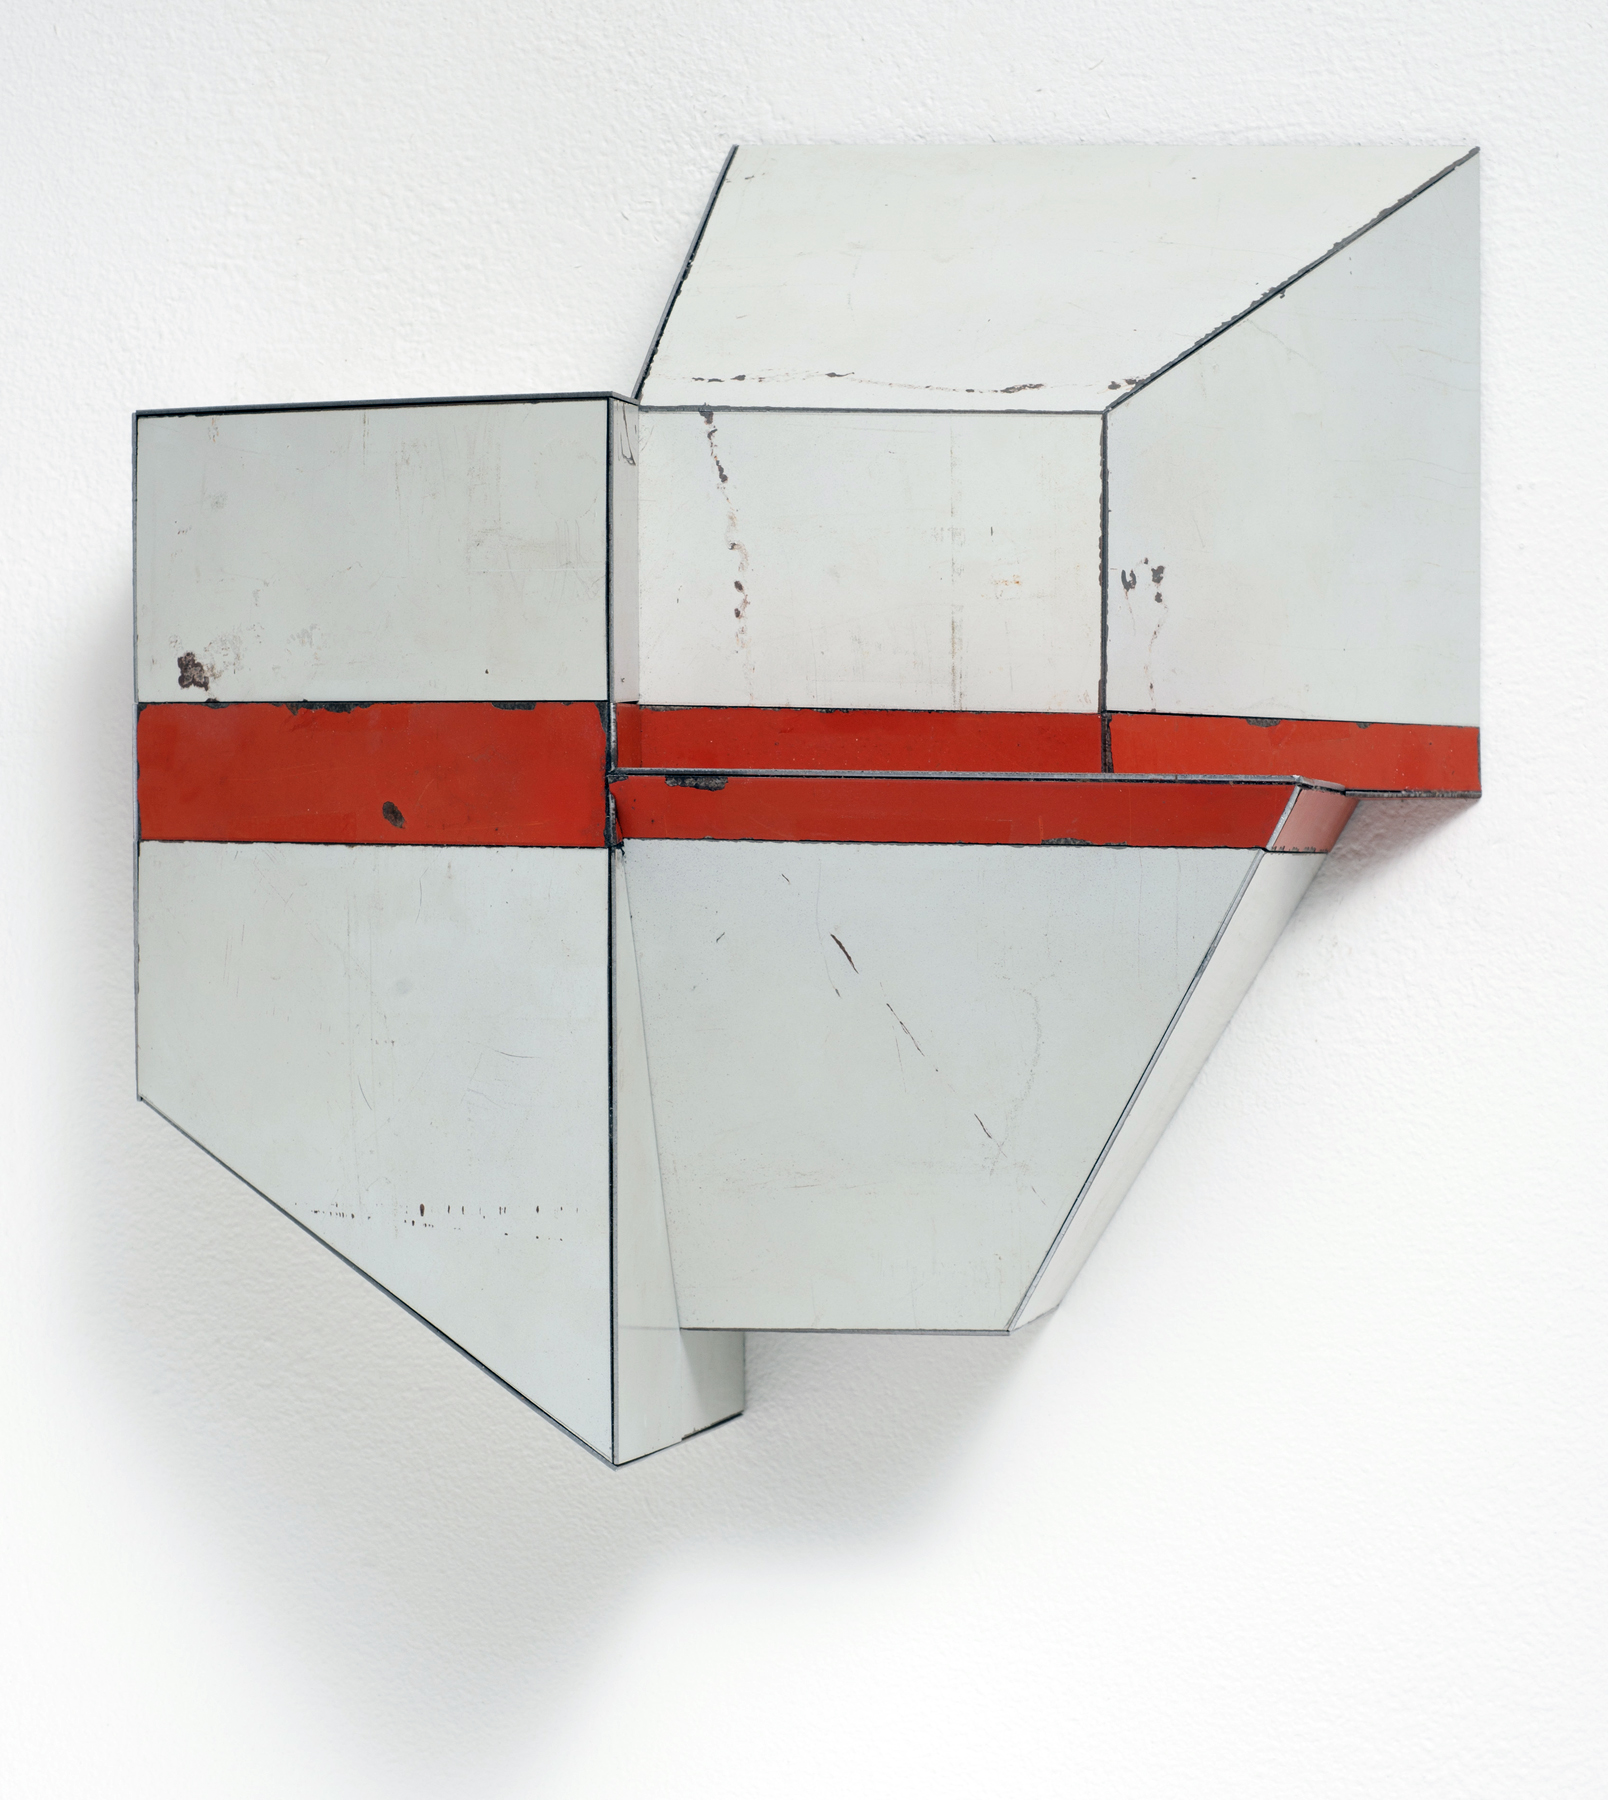 Divided Unity, 10 x 10 x 5 inches / 25.4 x 25.4 x 12.7 cm, salvage steel, marine-grade plywood, silicone, vulcanized rubber, hardware, 2018